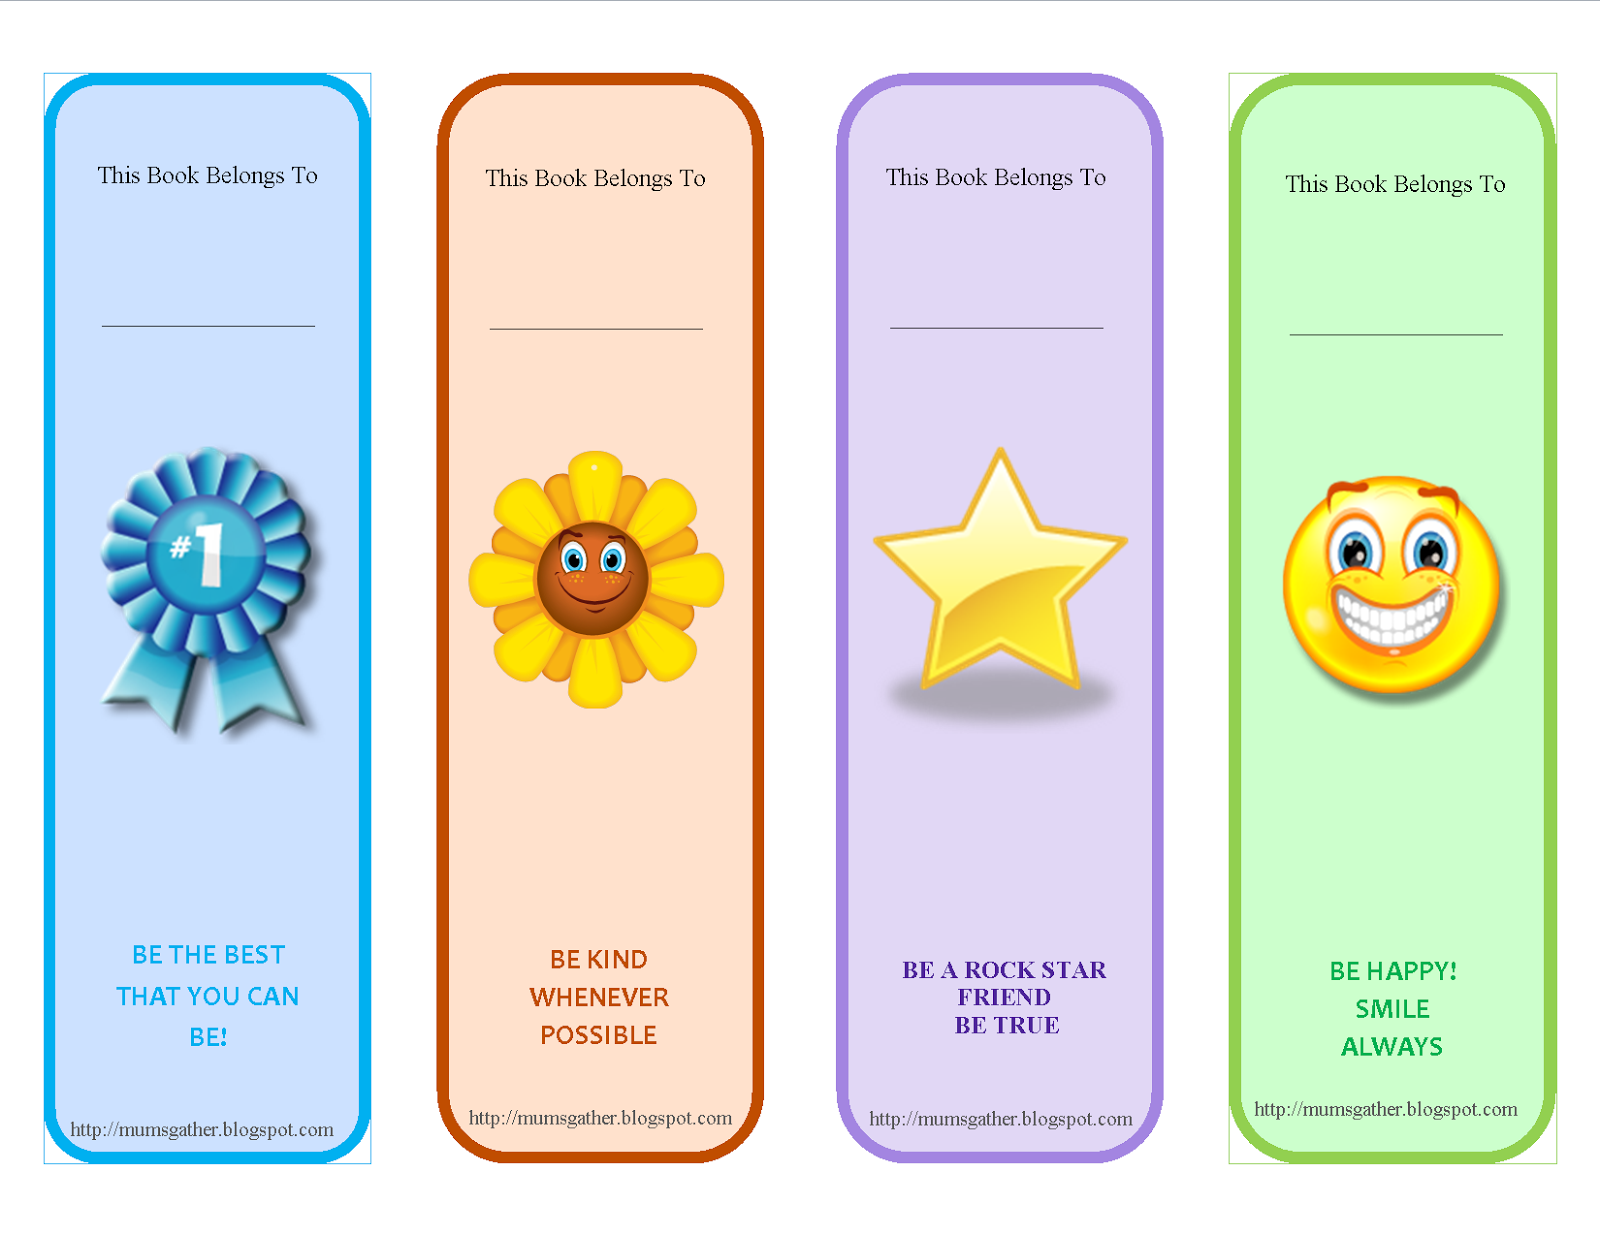 image regarding Free Printable Inspirational Bookmarks to Color titled Free of charge Printable Motivational Rates Bookmark For Small children